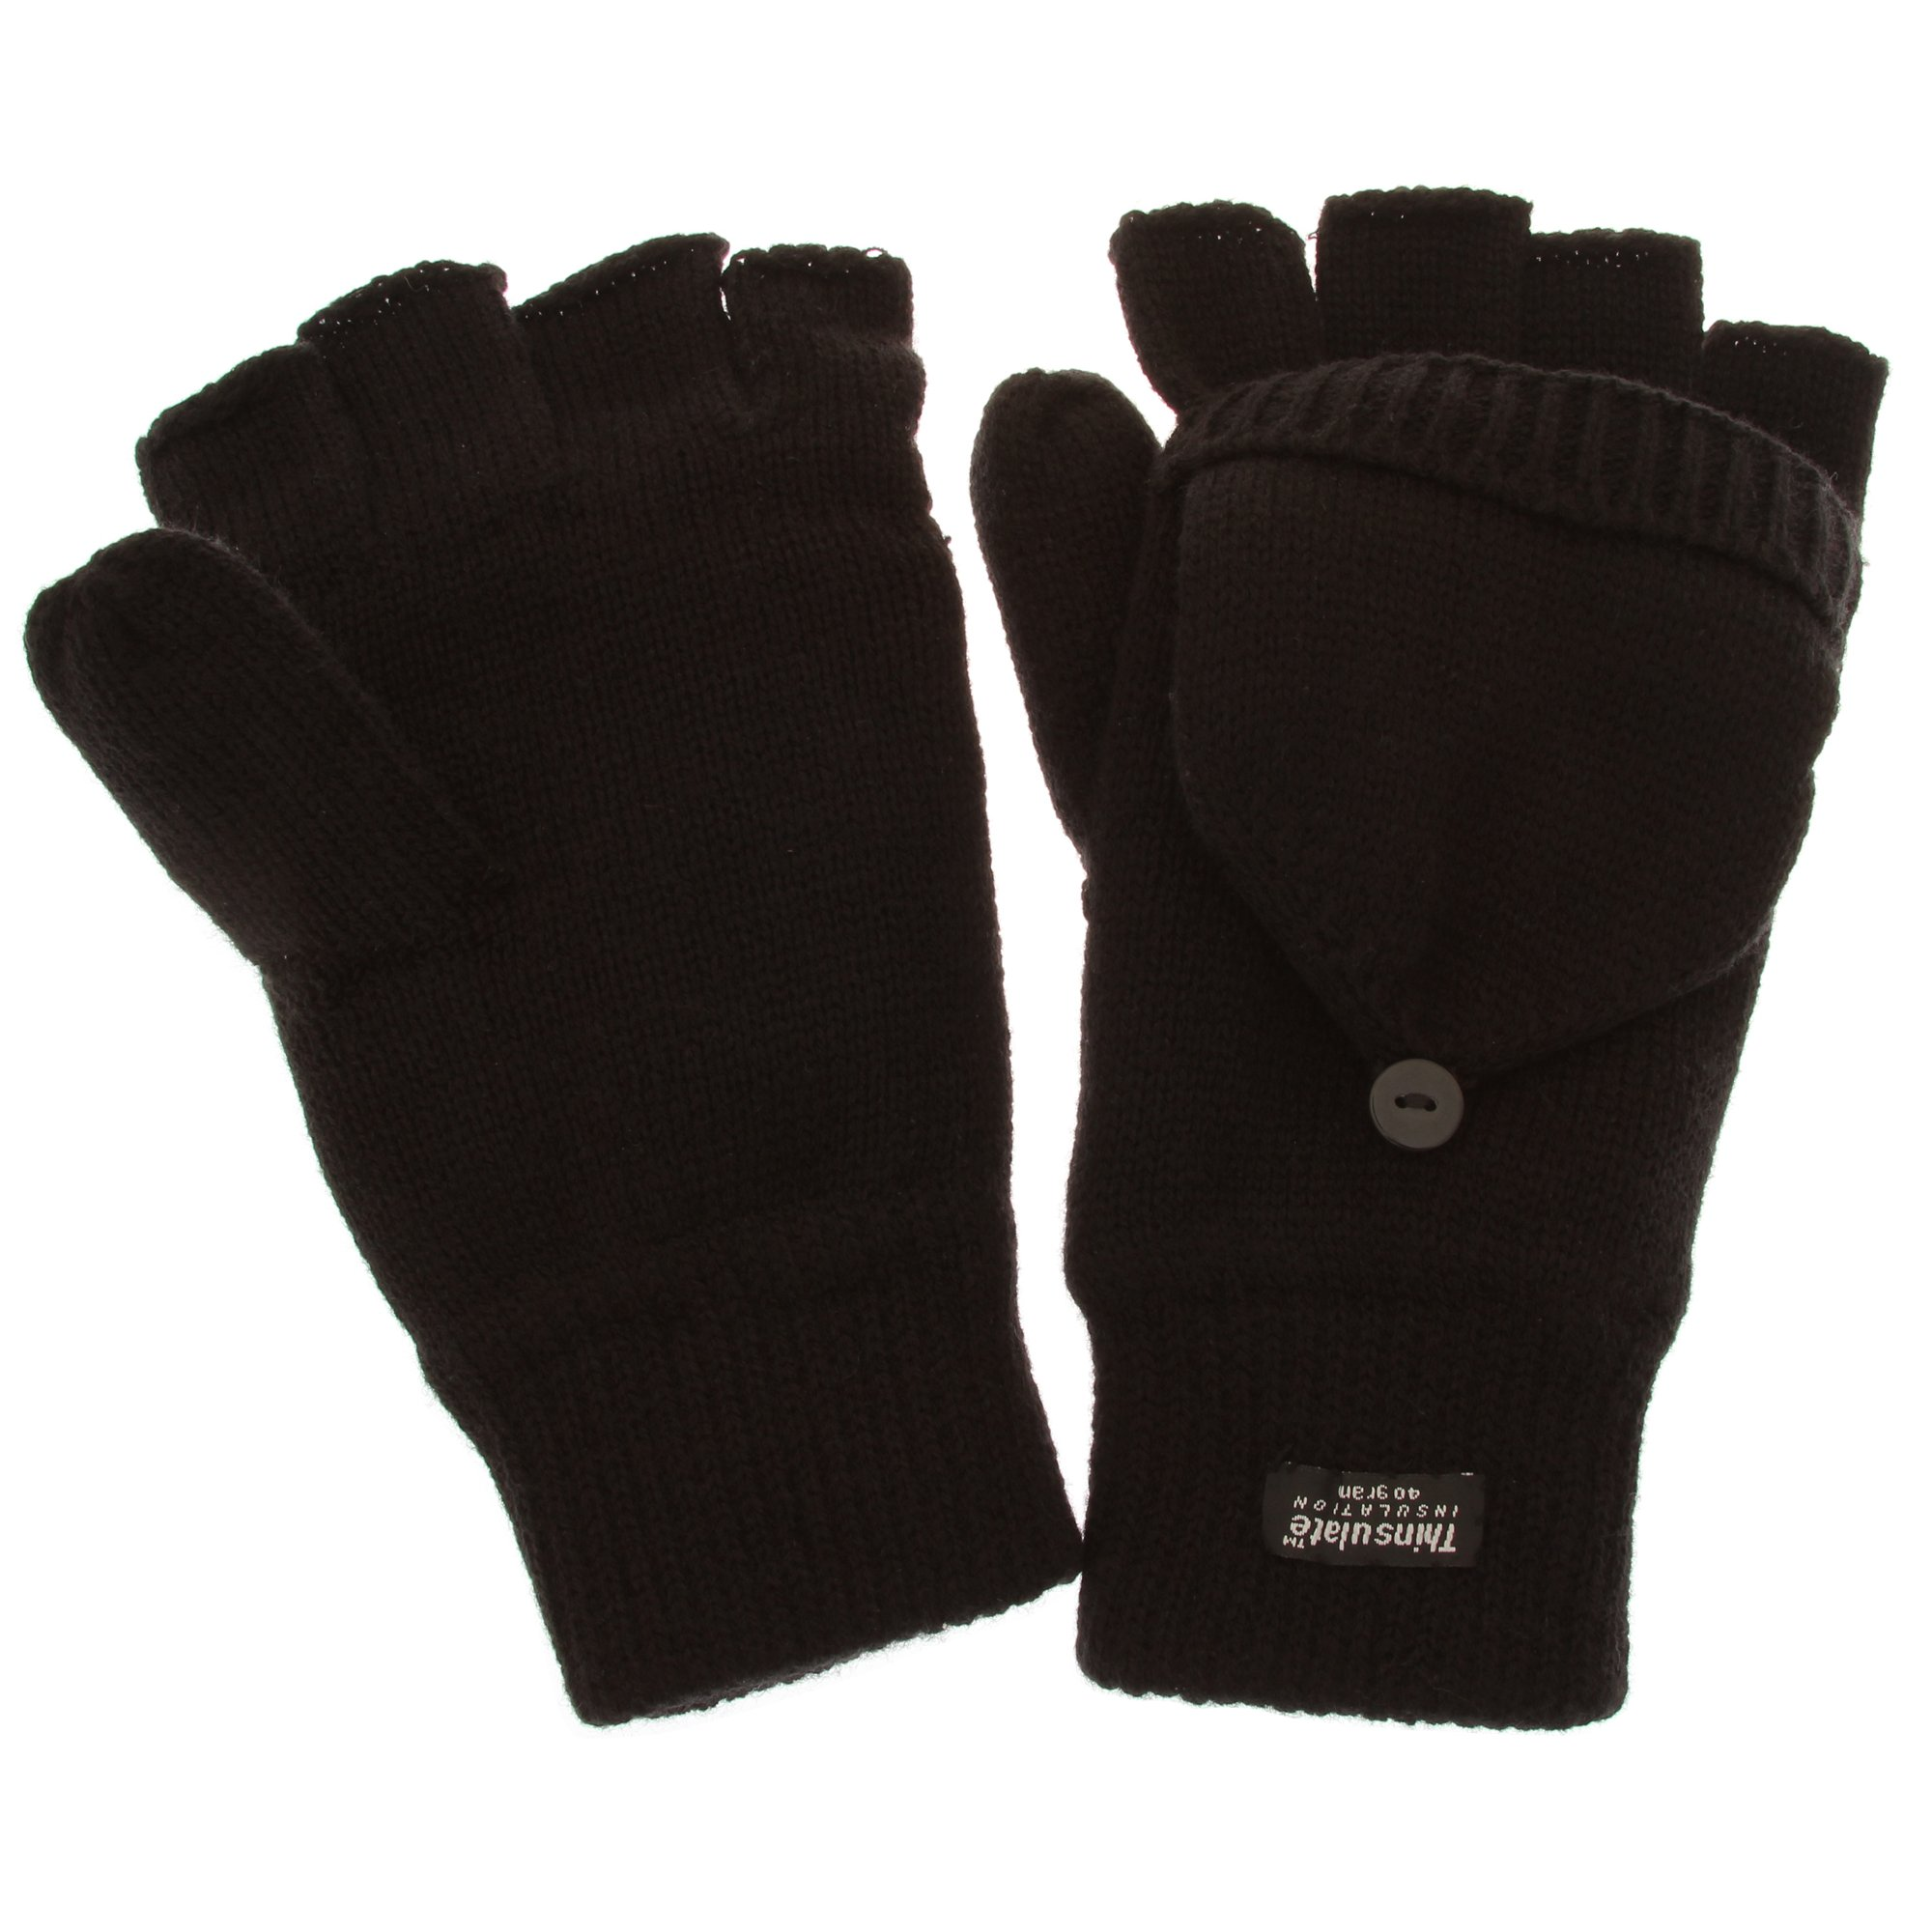 Office Supplies Office Electronics Walmart for Business. Video Games. Certified Refurbished. Milwaukee Mens Premium Leather Fingerless Gloves w/Hard Carbon Kuckles & Gel Palm Black. Product Image. Price $ Women's Faux Fur Fingerless Winter Gloves Hand warmers,light grey. Product Image. Price $ 9.